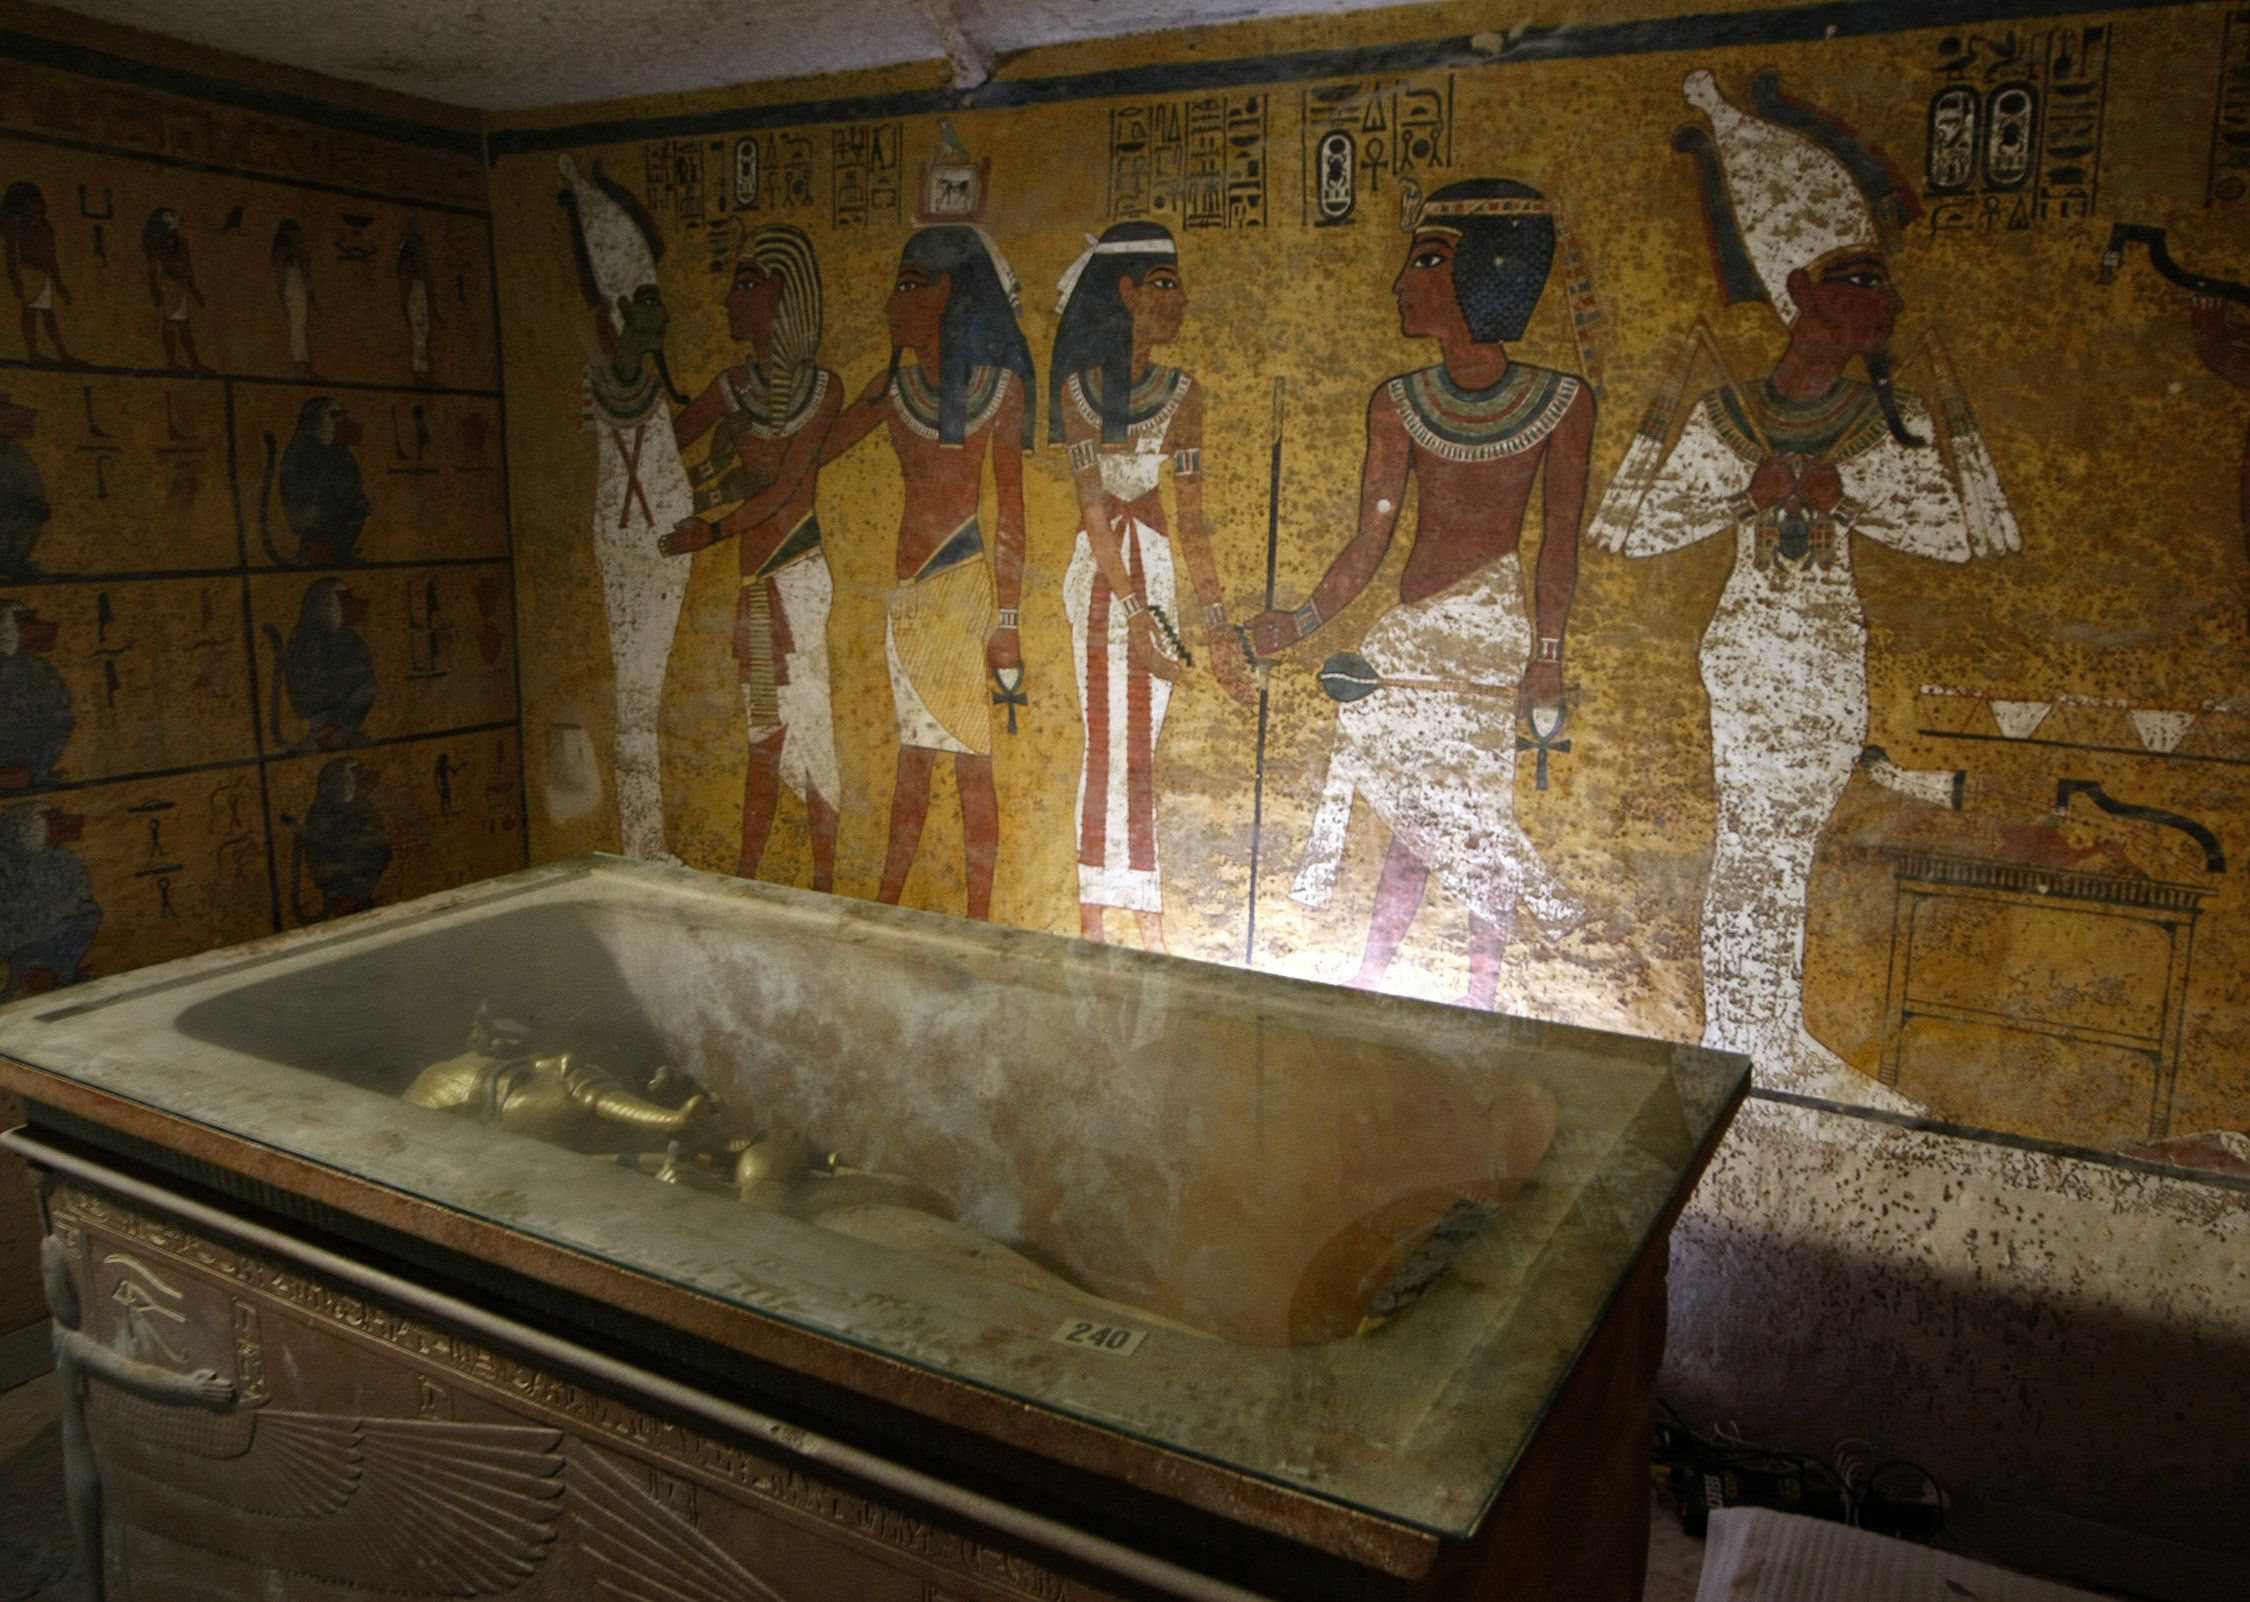 The wall on the other side of King Tut's sarcophagus could be hiding the entrance to a secret chamber.